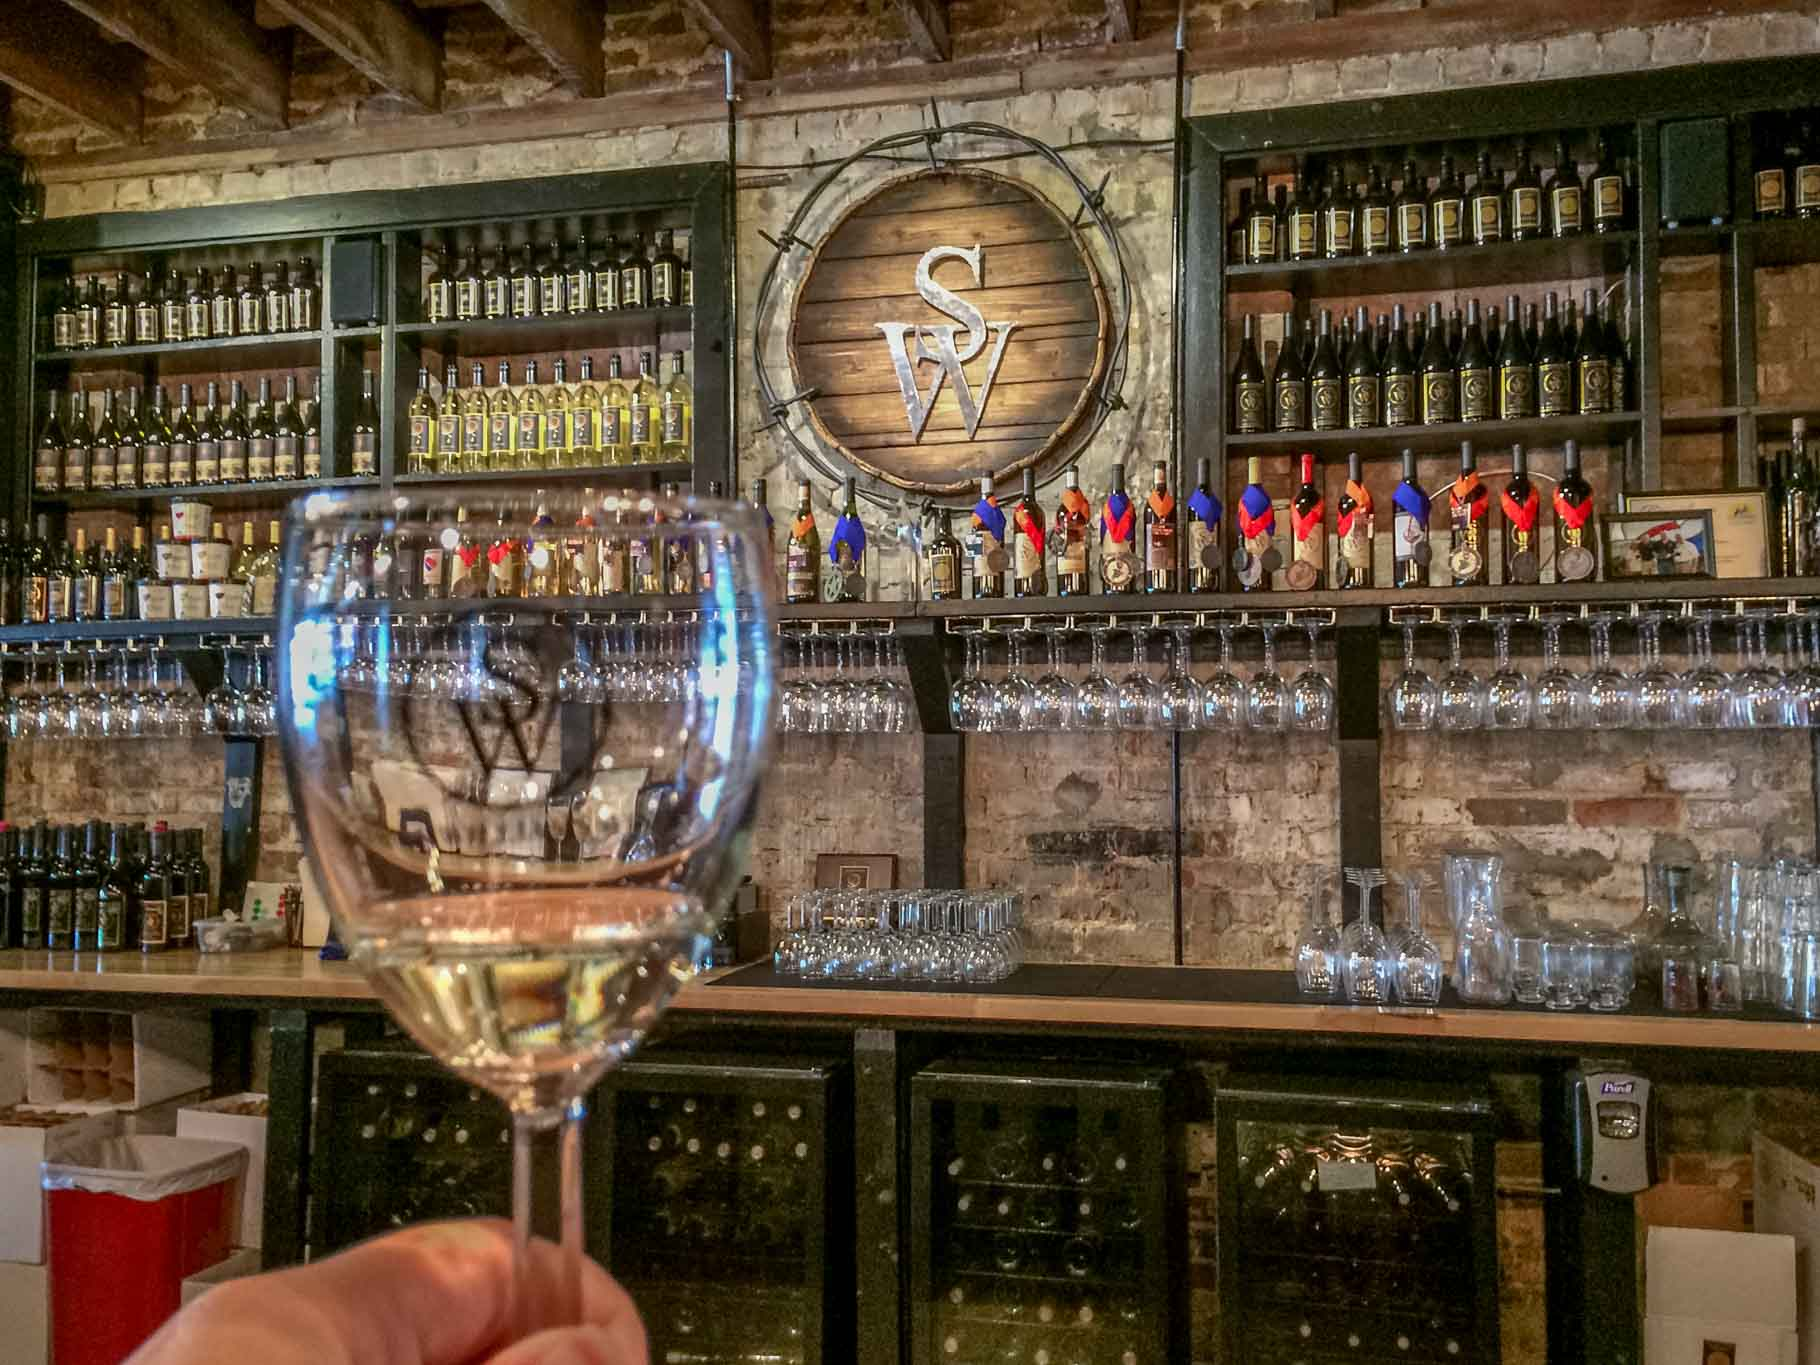 Wine glass and bar at Sloan & Williams Winery in Grapevine, Texas